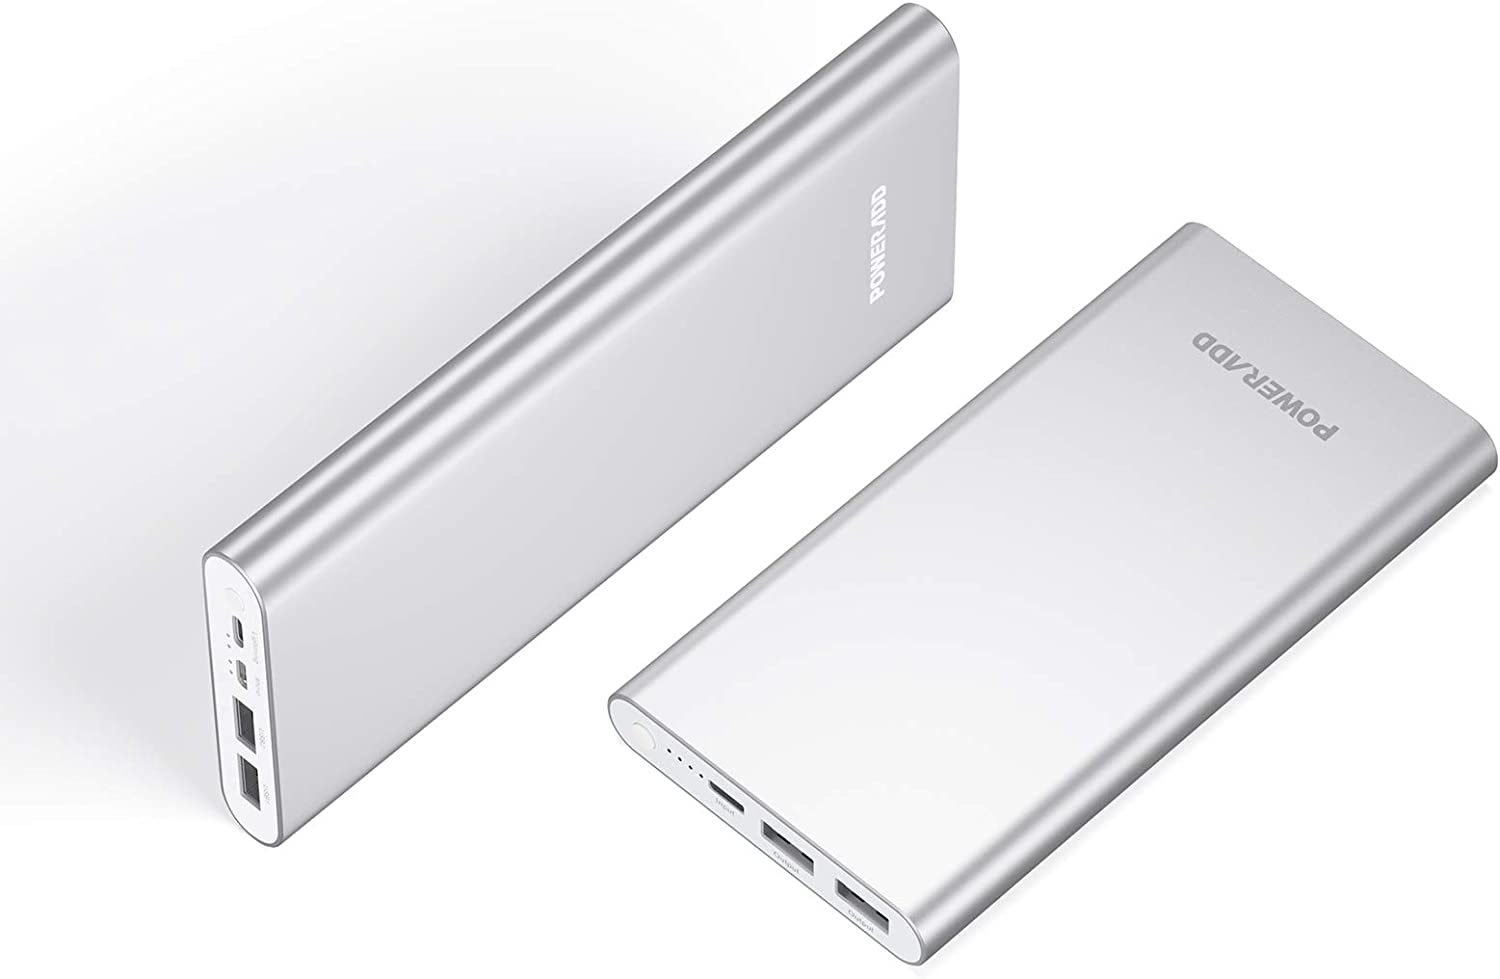 POWERADD Pilot 4GS 12000mAh Portable Charger 8 Pin Input Power Bank with 3A High-Speed Output Compatible with iPhone, iPad, iPod, Samsung and More - Silver